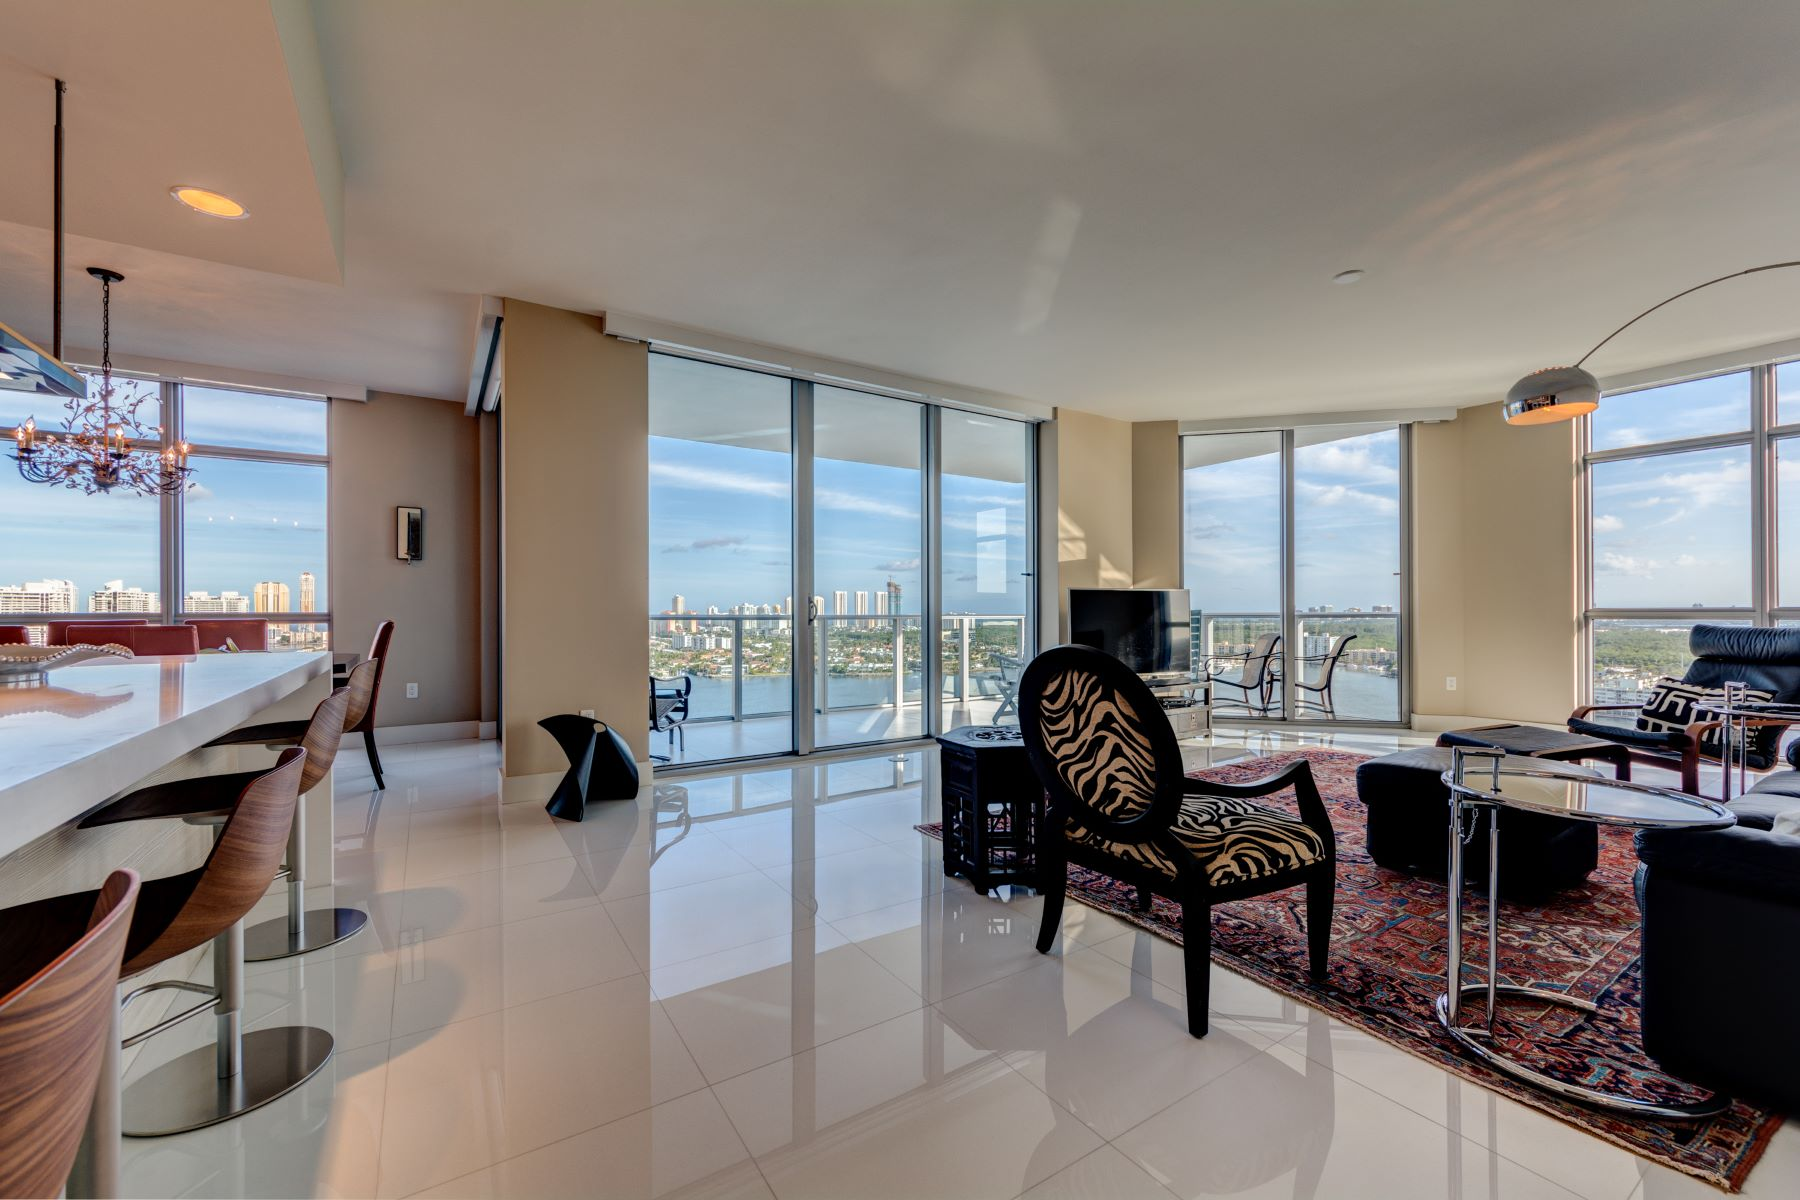 Condominiums for Sale at 17301 Biscayne Blvd 2309, Aventura, Florida 33160 United States